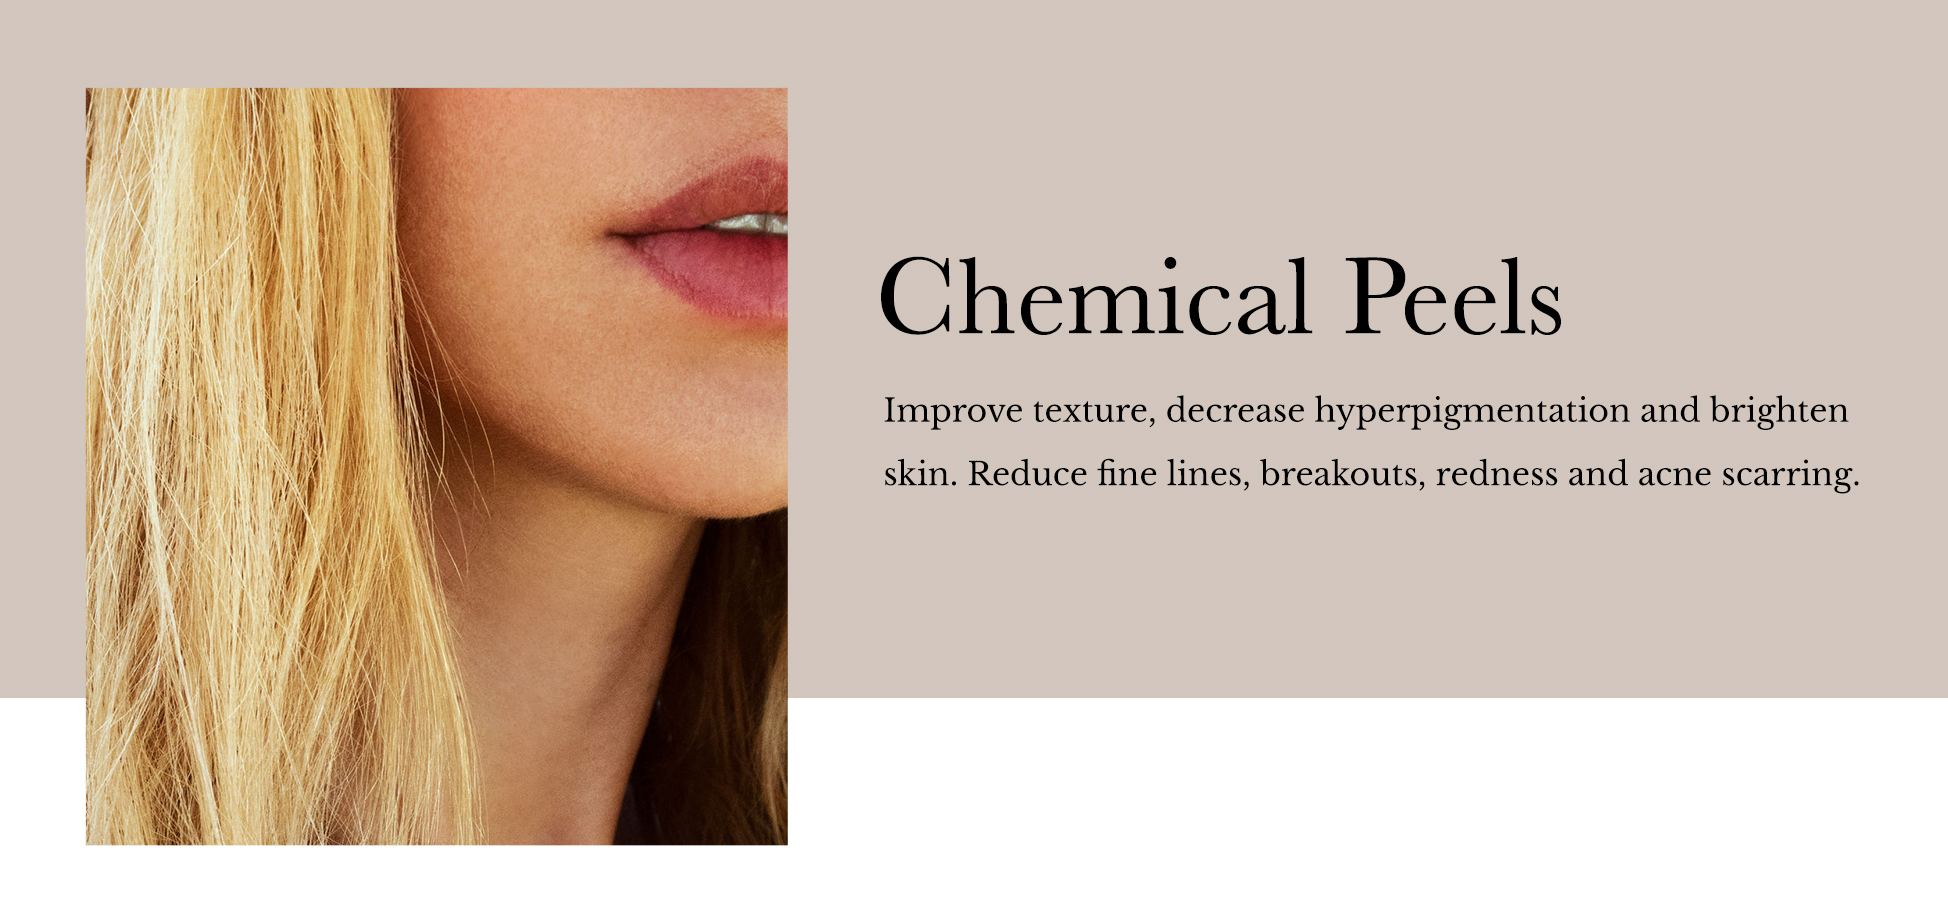 Chemical_Peels_Header.JPG